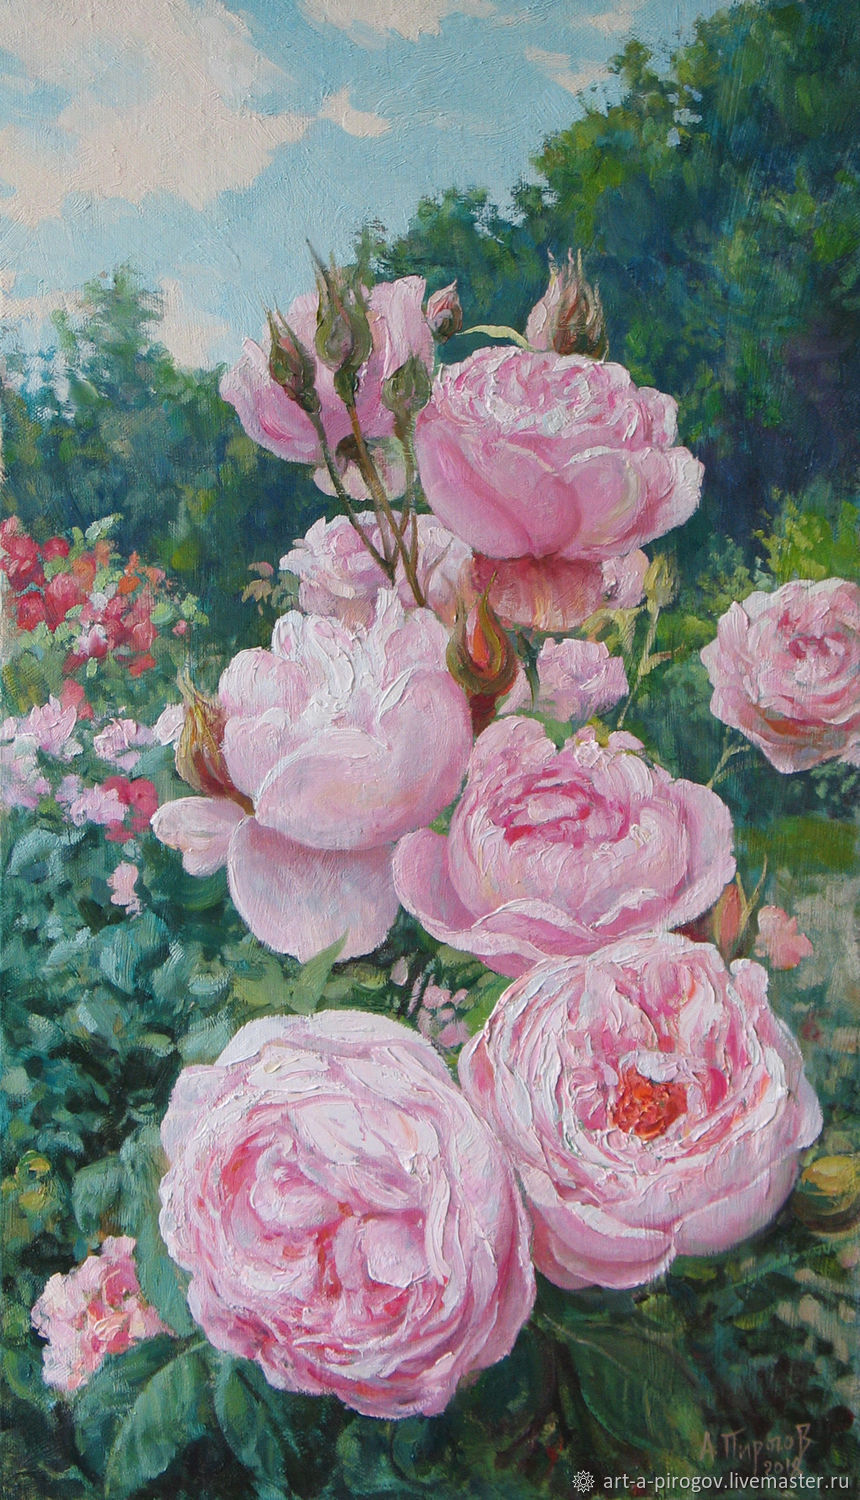 pink roses on the